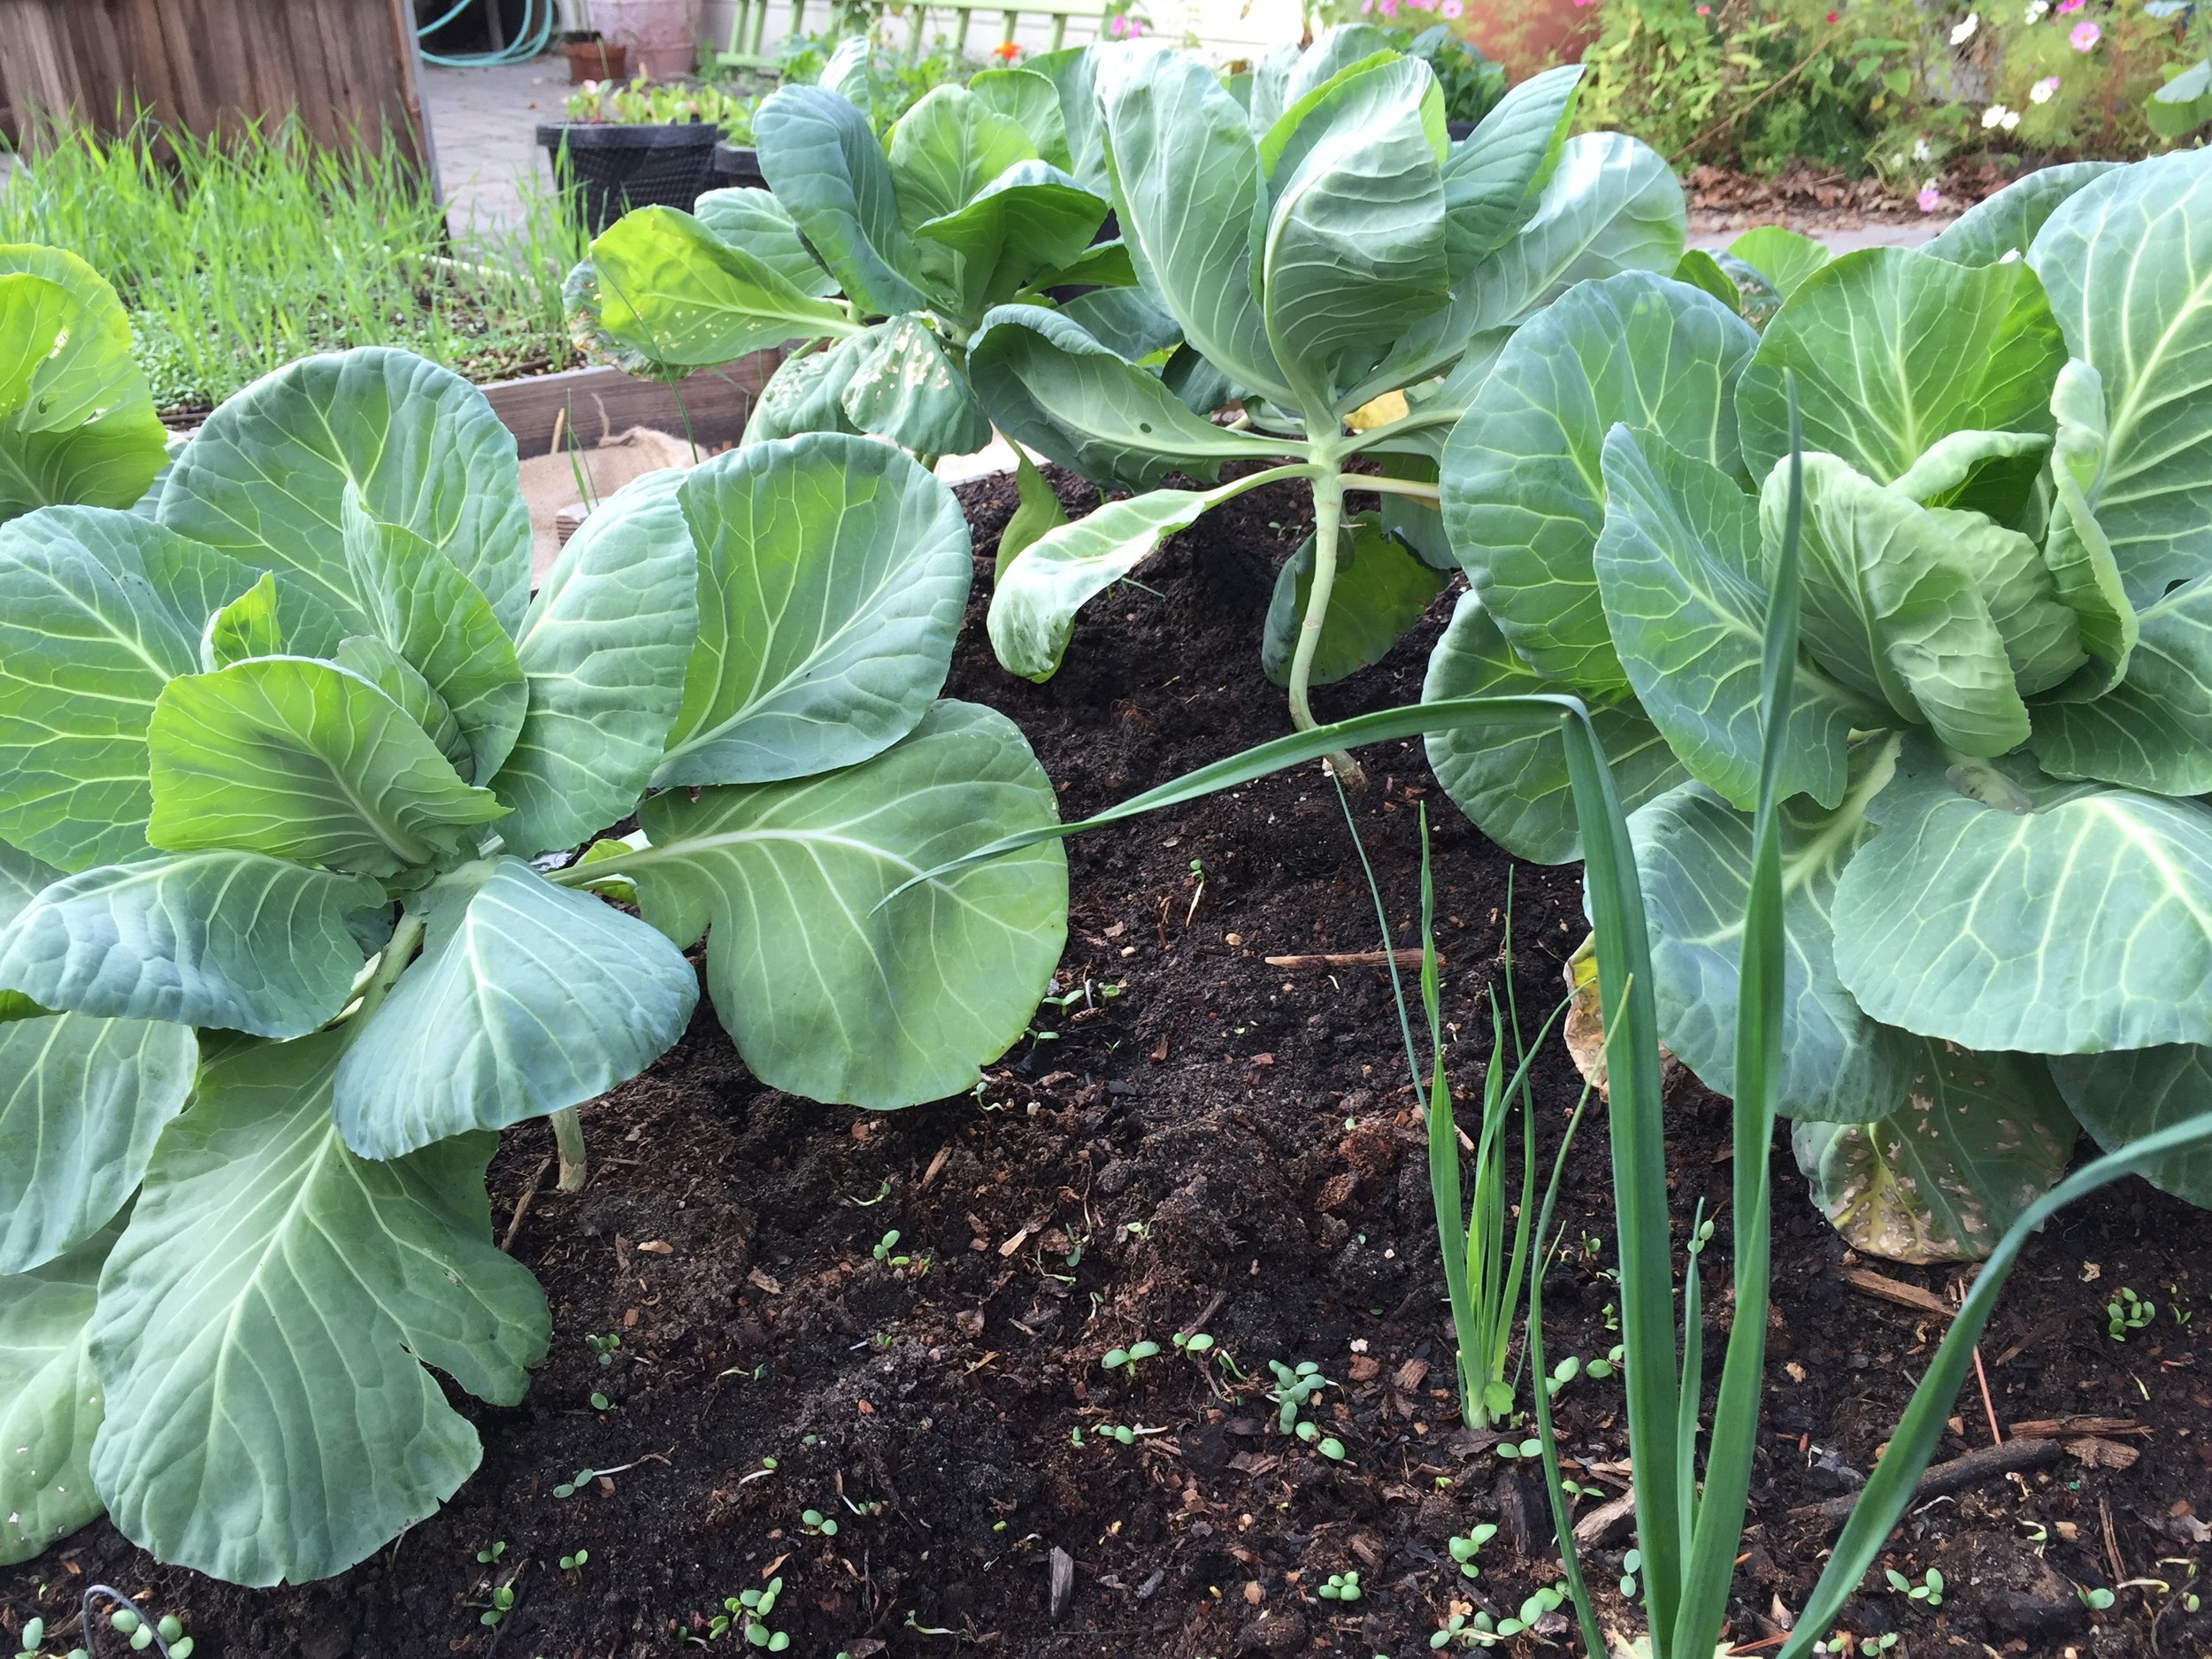 cabbage and leeks. the cabbage is really looking nice.